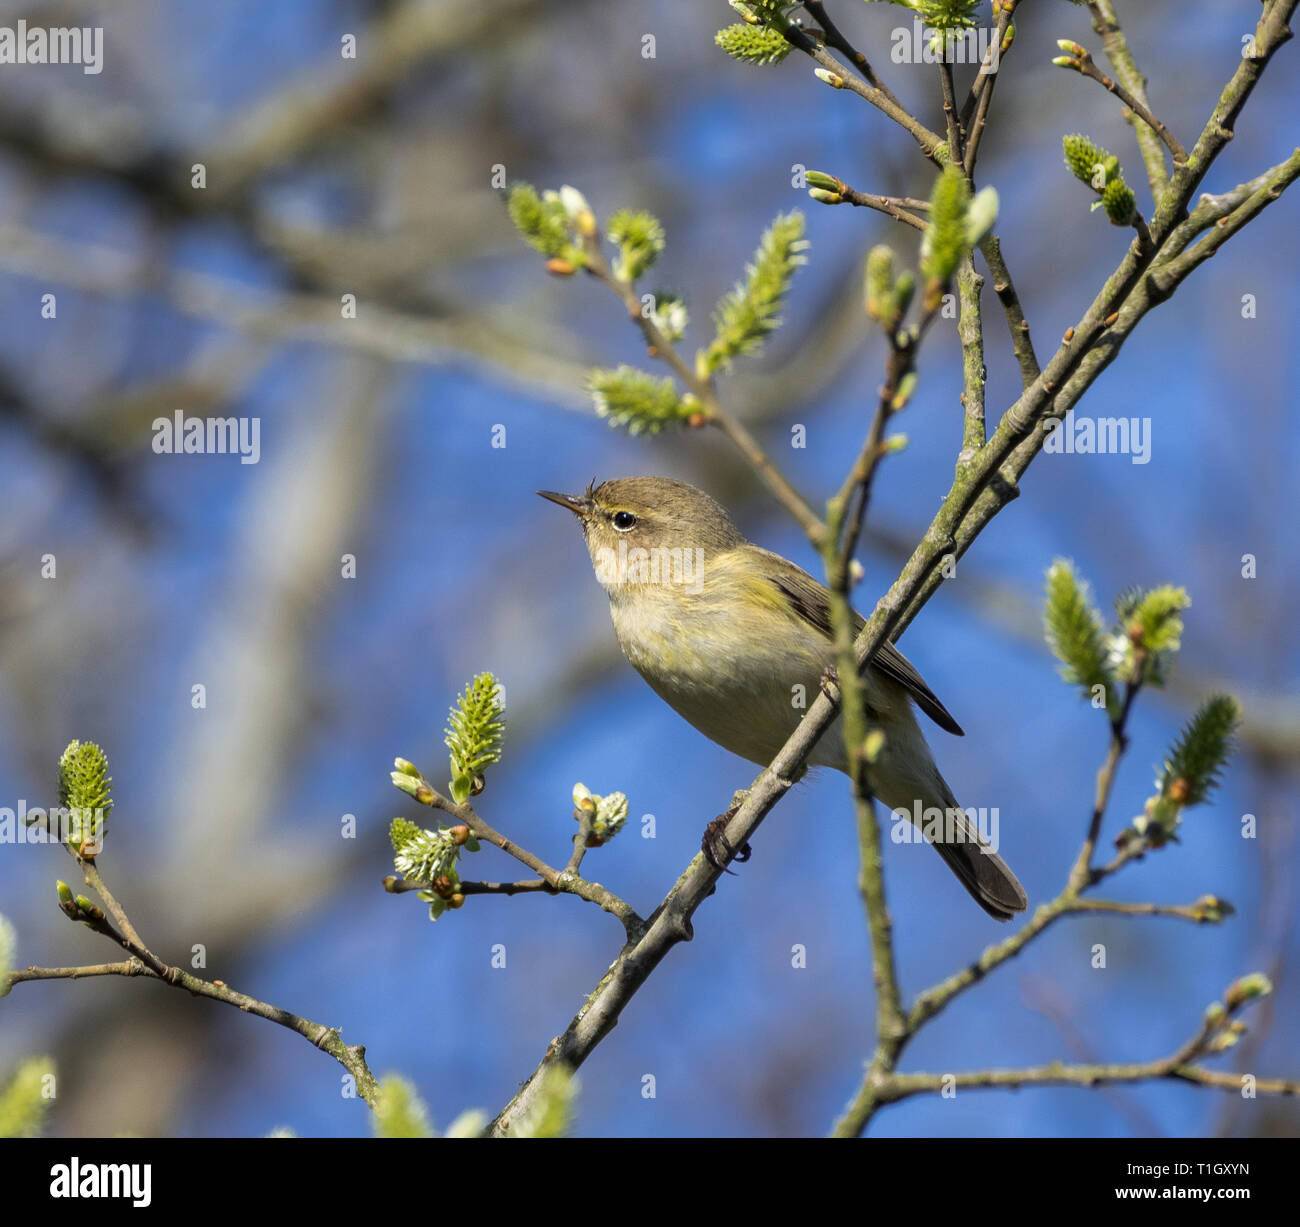 Chiff Chaff, Teifi Marshes, Welsh Wildlife Centre, Wales Stock Photo